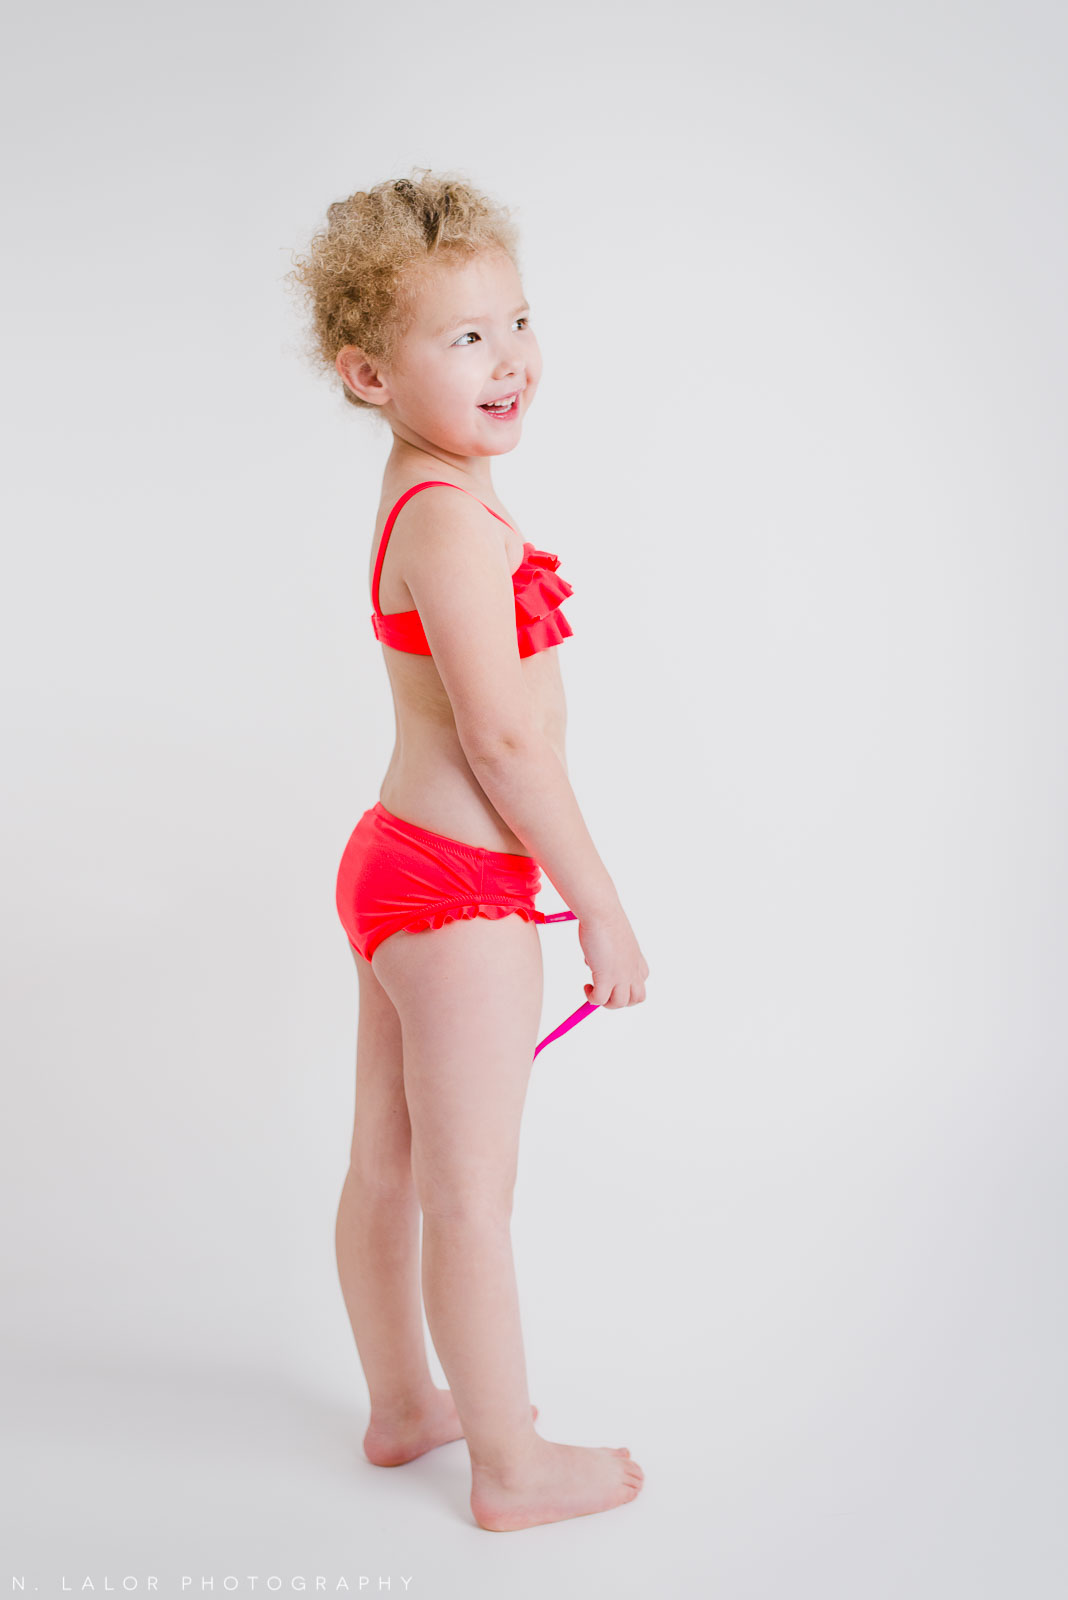 Simple and fun studio portrait of a 4-year old girl wearing a red swim suit. By N. Lalor Photography. Greenwich, CT.